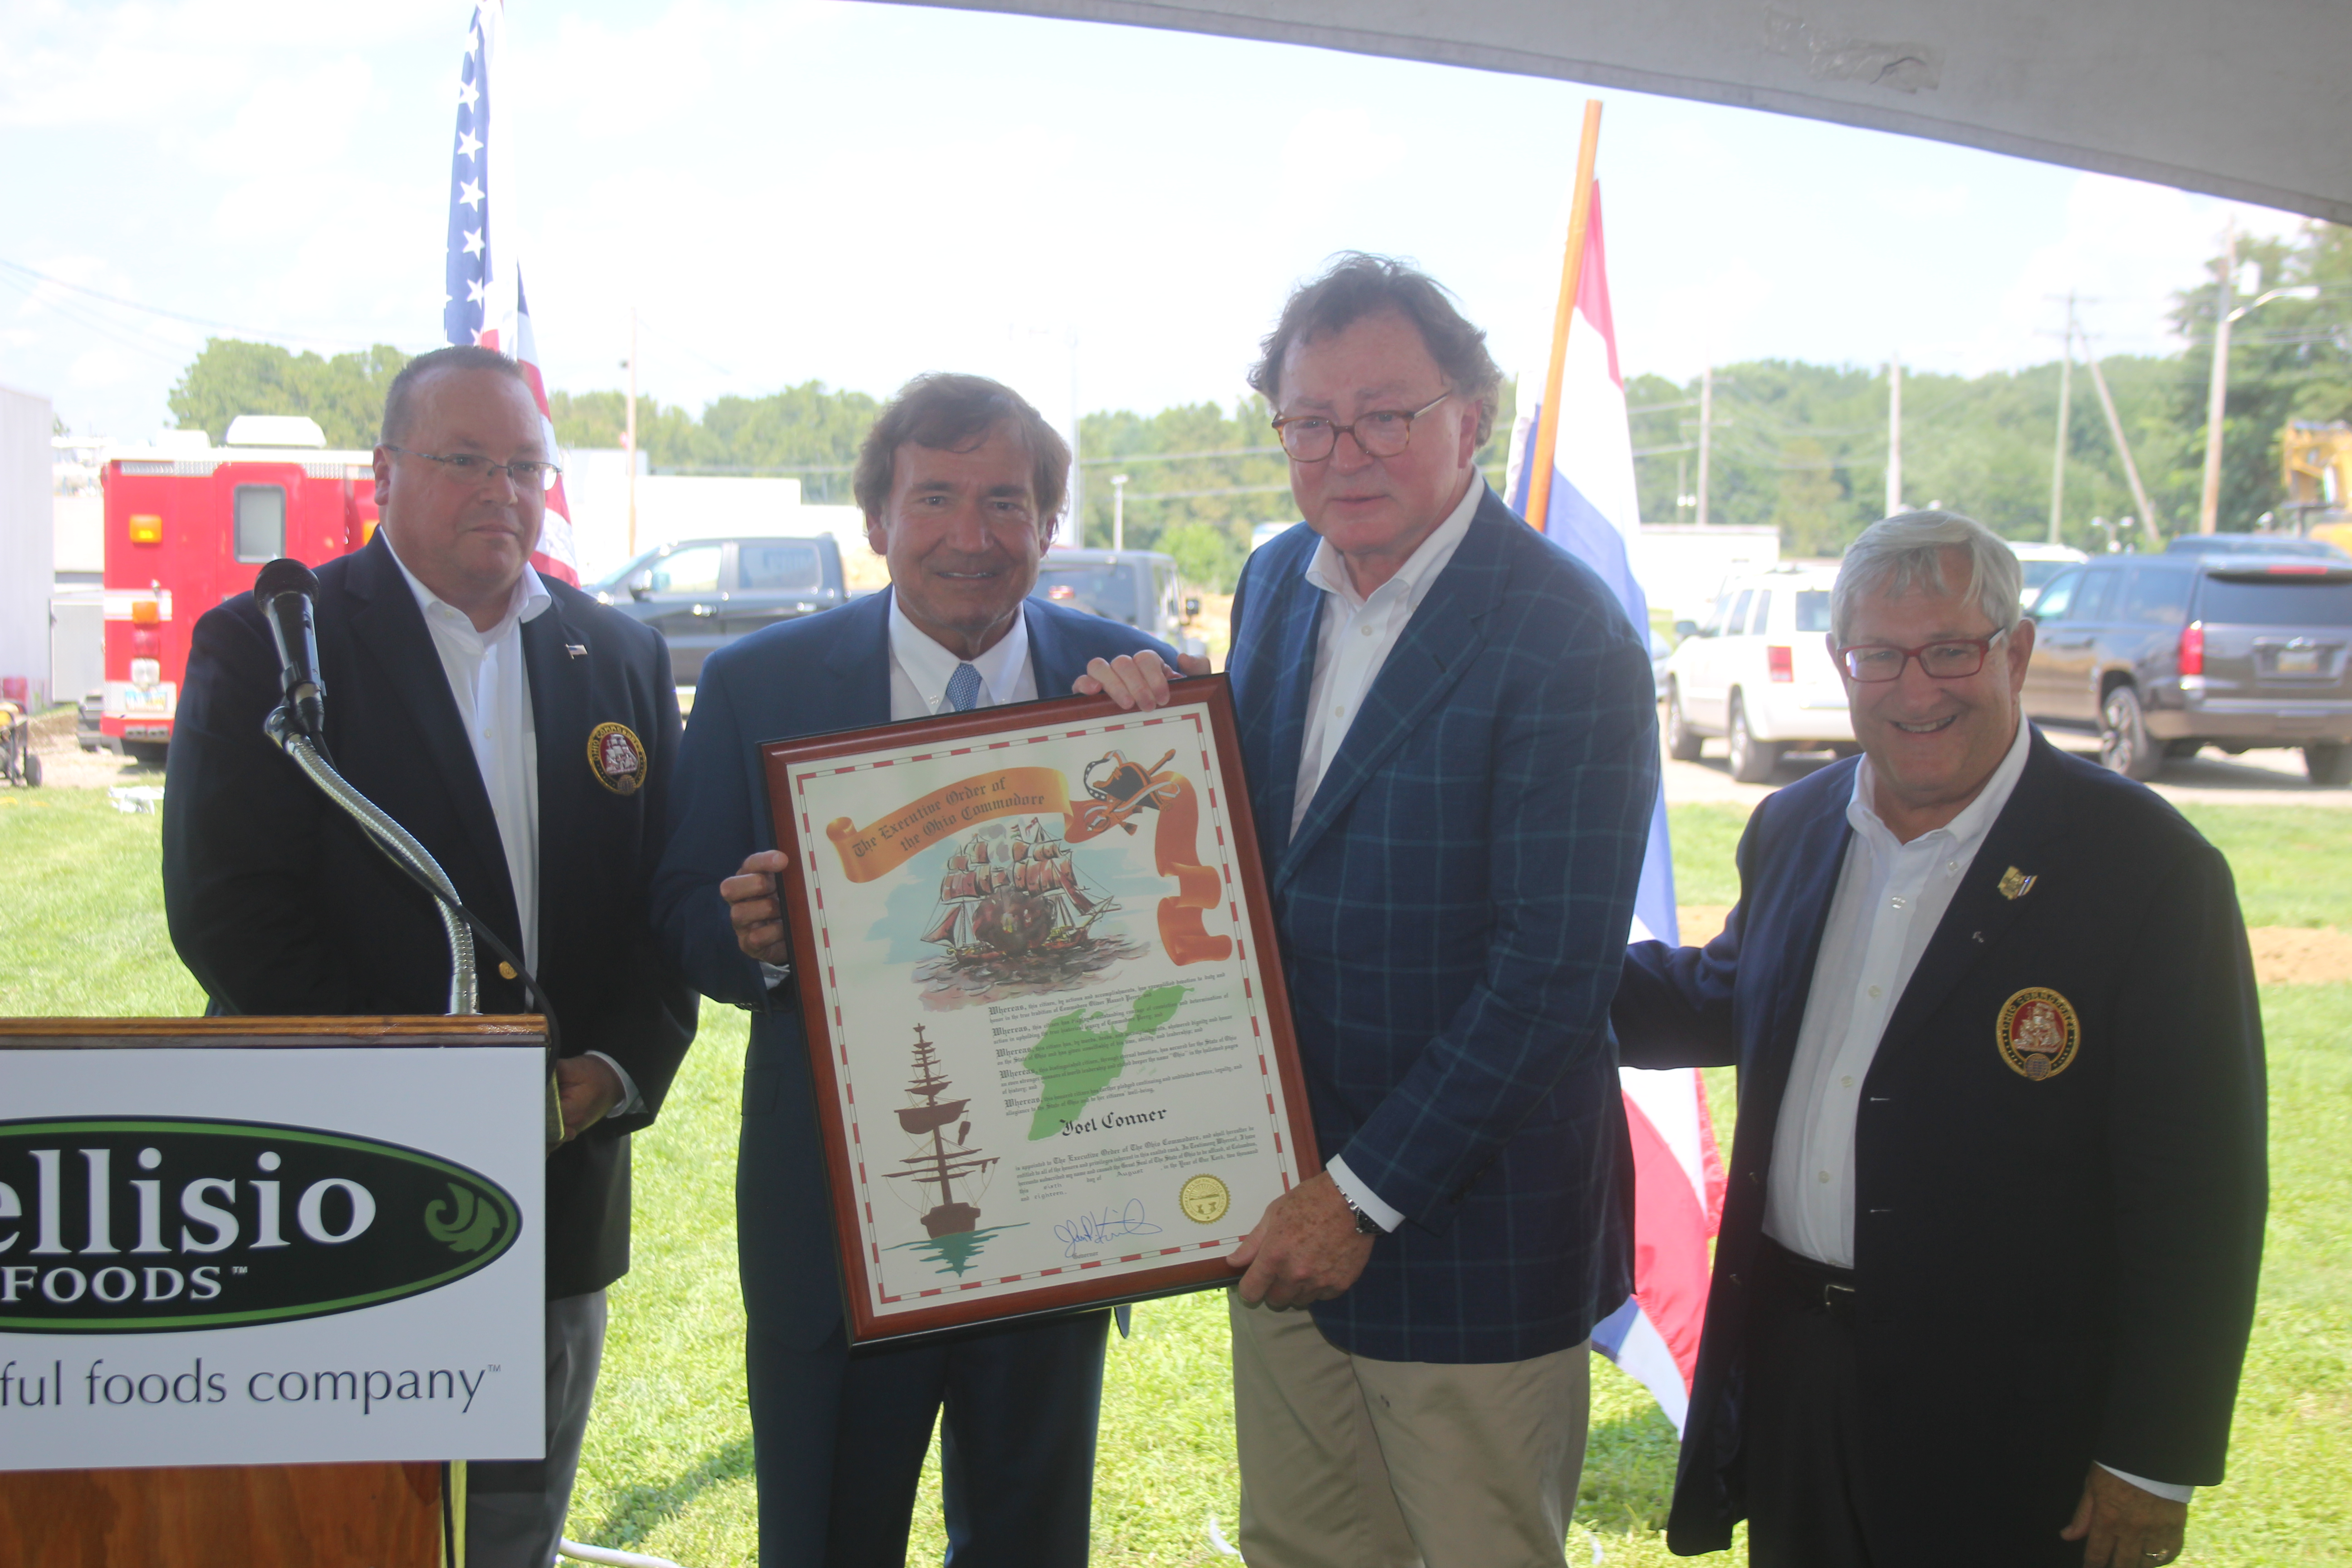 Joel Conner Executive Chairman, Bellisio Foods, Inc.  was inducted into the Association